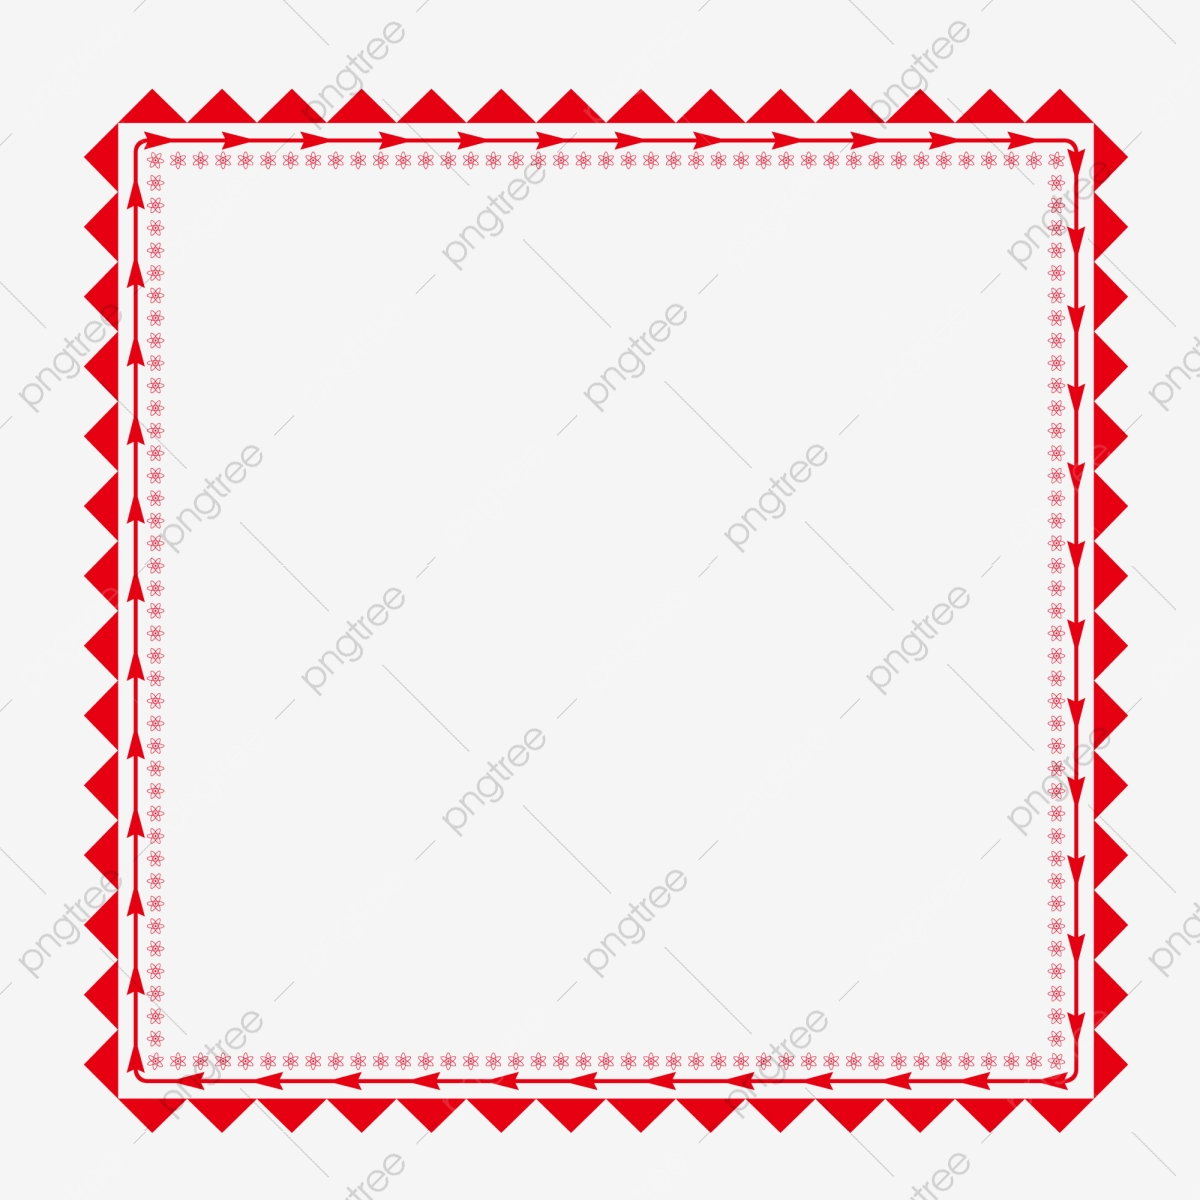 Download Cute Border Festive Border Frame Geometric Border Beautiful Border Unique Border Dialog Png And Vector With Transparent Background For Free Download